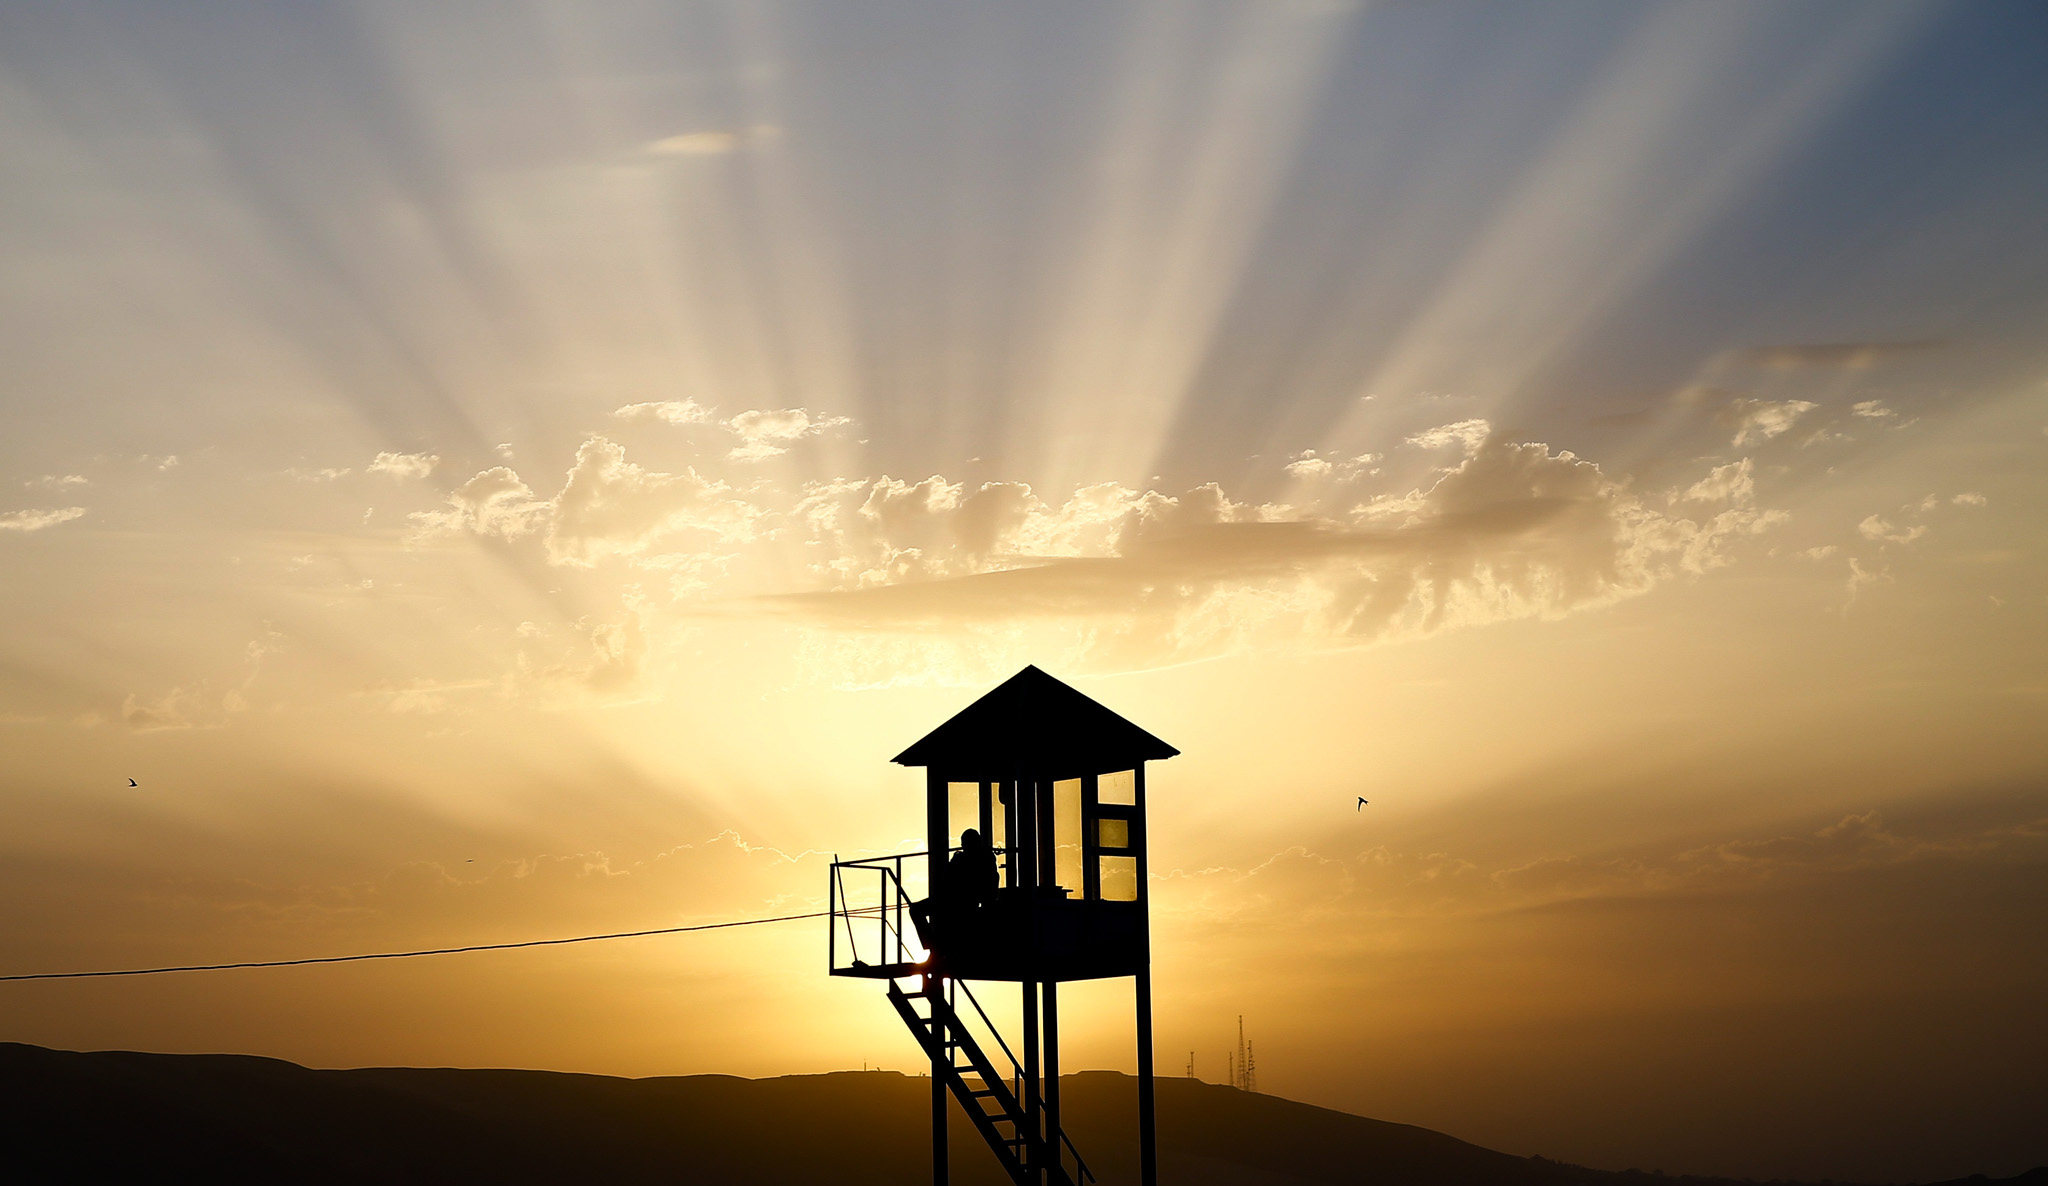 A police watch tower is silhoutted during sunset in Baku, Azerbaijan.